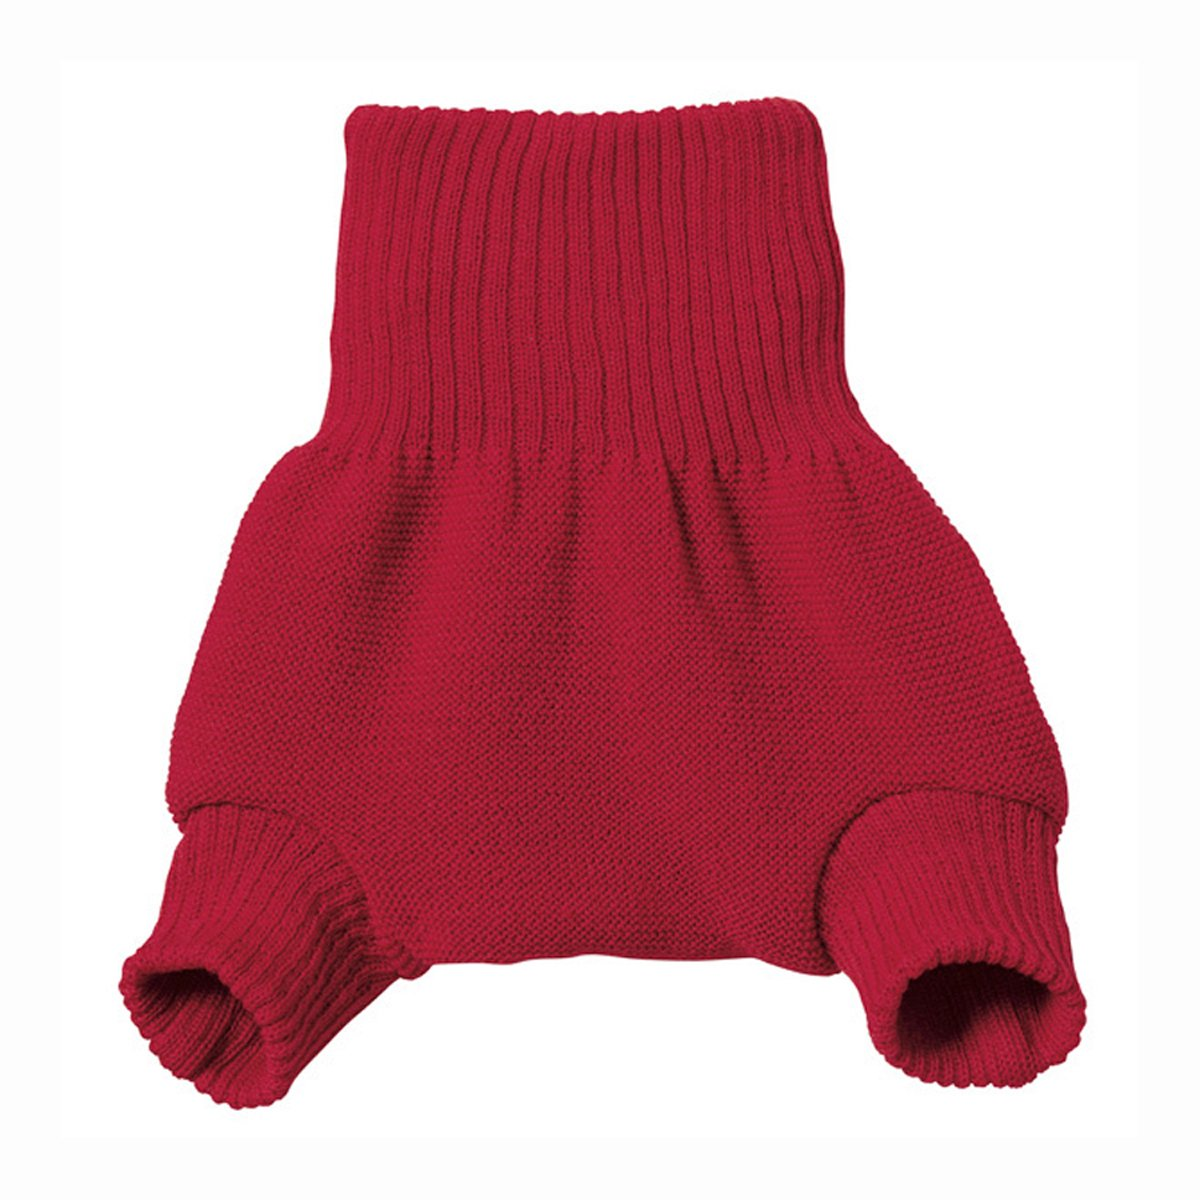 Disana Organic Merino Wool Cover 26501-124-00500-21-$P